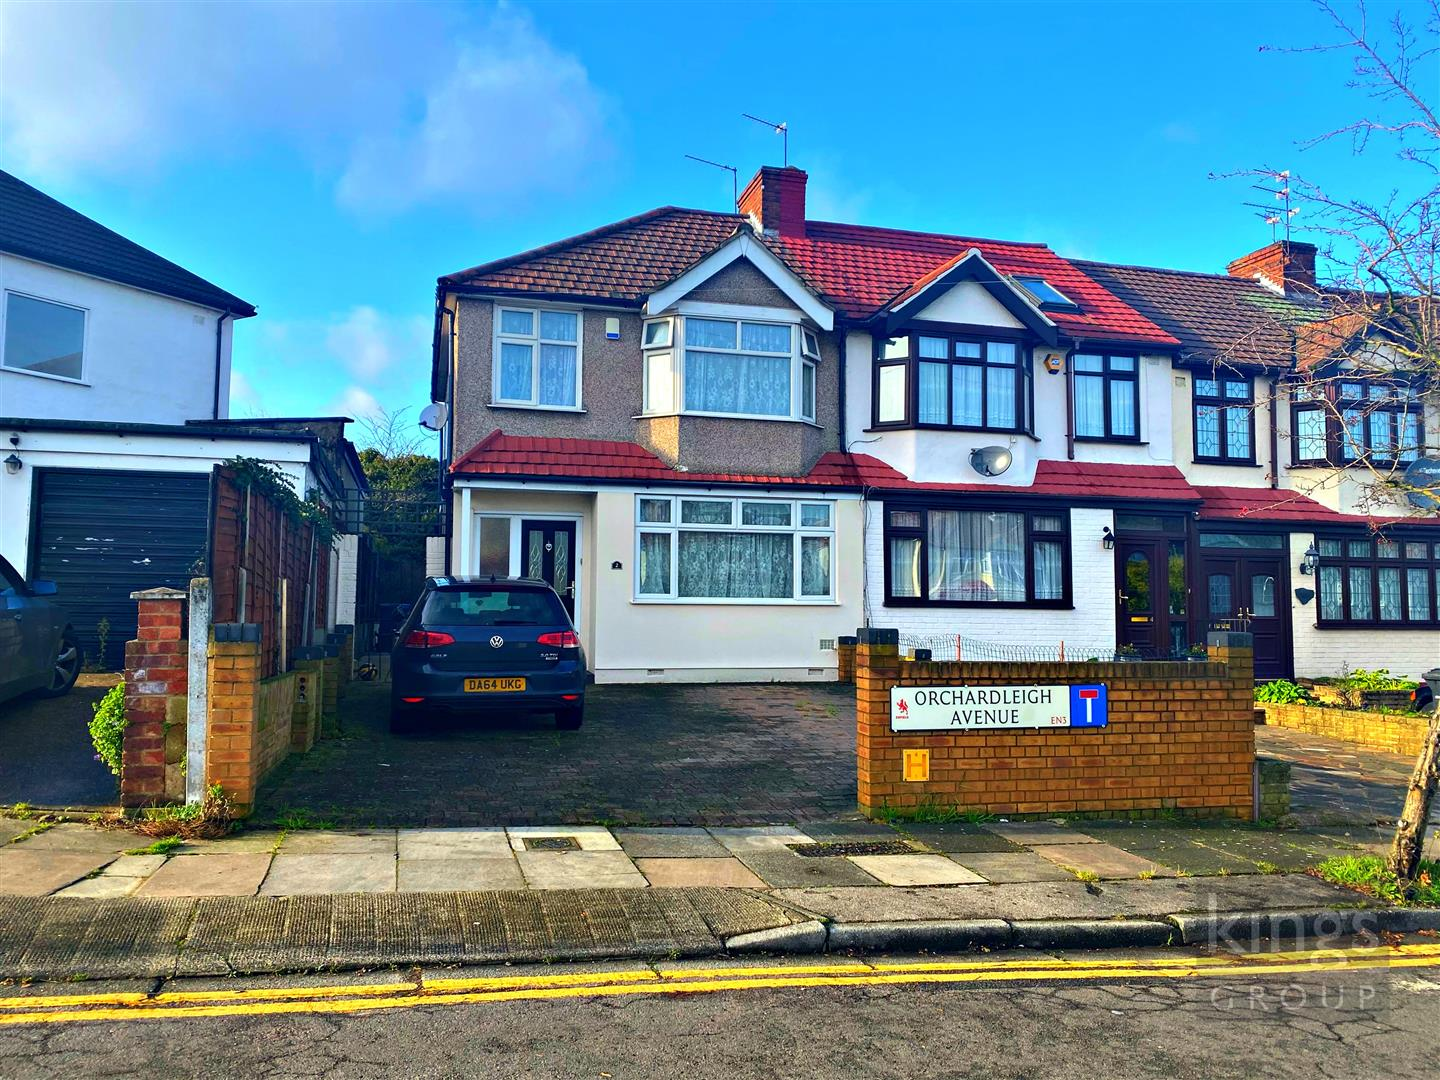 Orchardleigh Avenue, Enfield